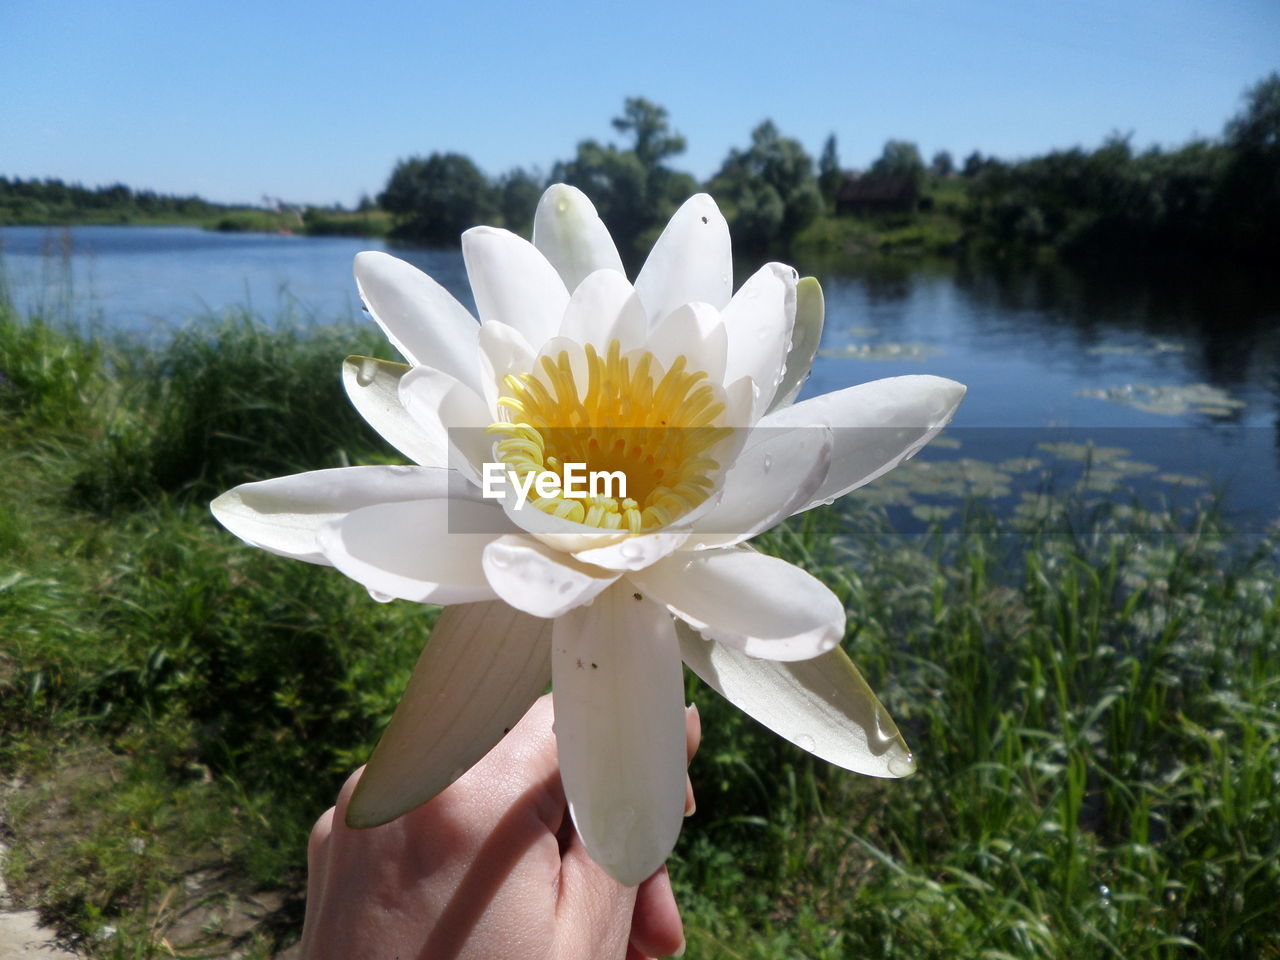 flower, human hand, nature, human body part, beauty in nature, petal, one person, holding, real people, freshness, plant, white color, outdoors, flower head, day, growth, lake, fragility, close-up, focus on foreground, water, people